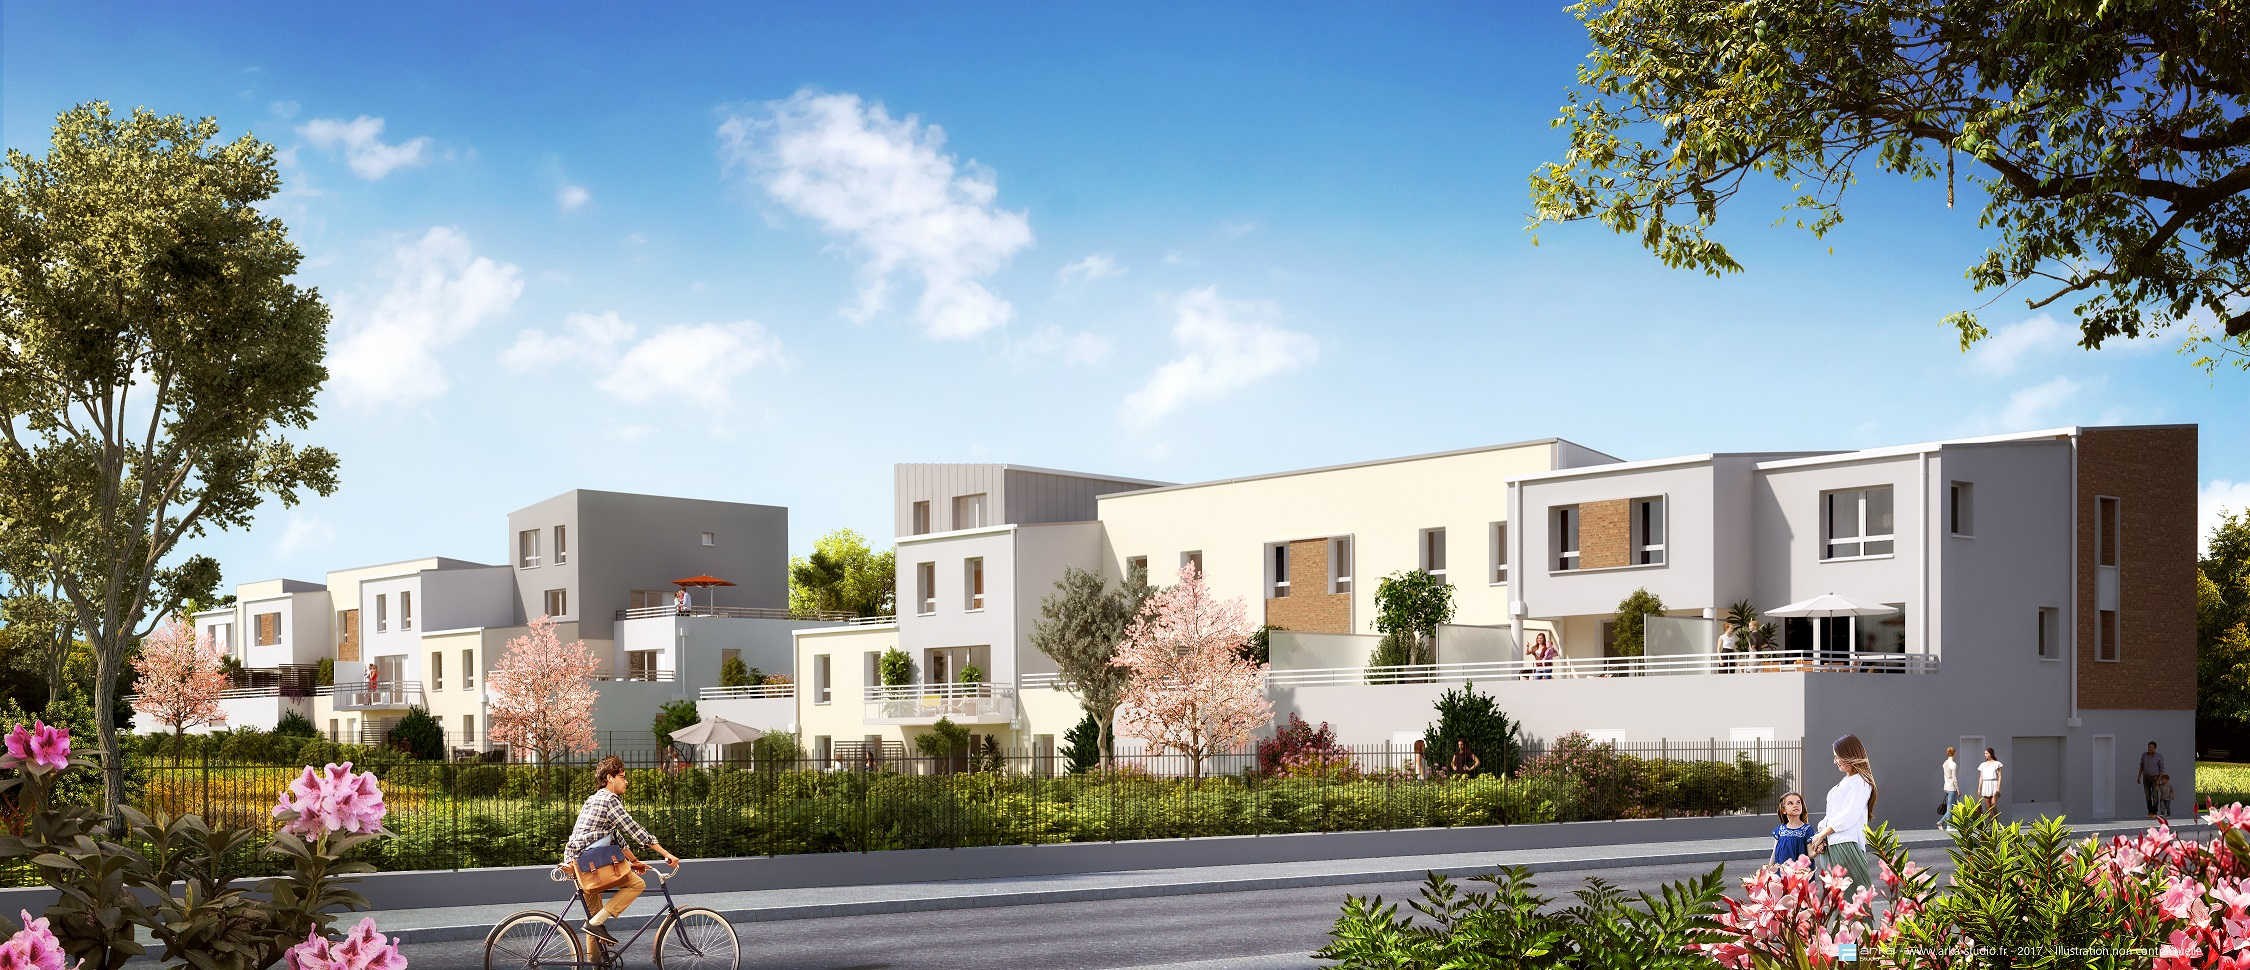 Garden city reims programme immobilier neuf reims for Programme immobilier